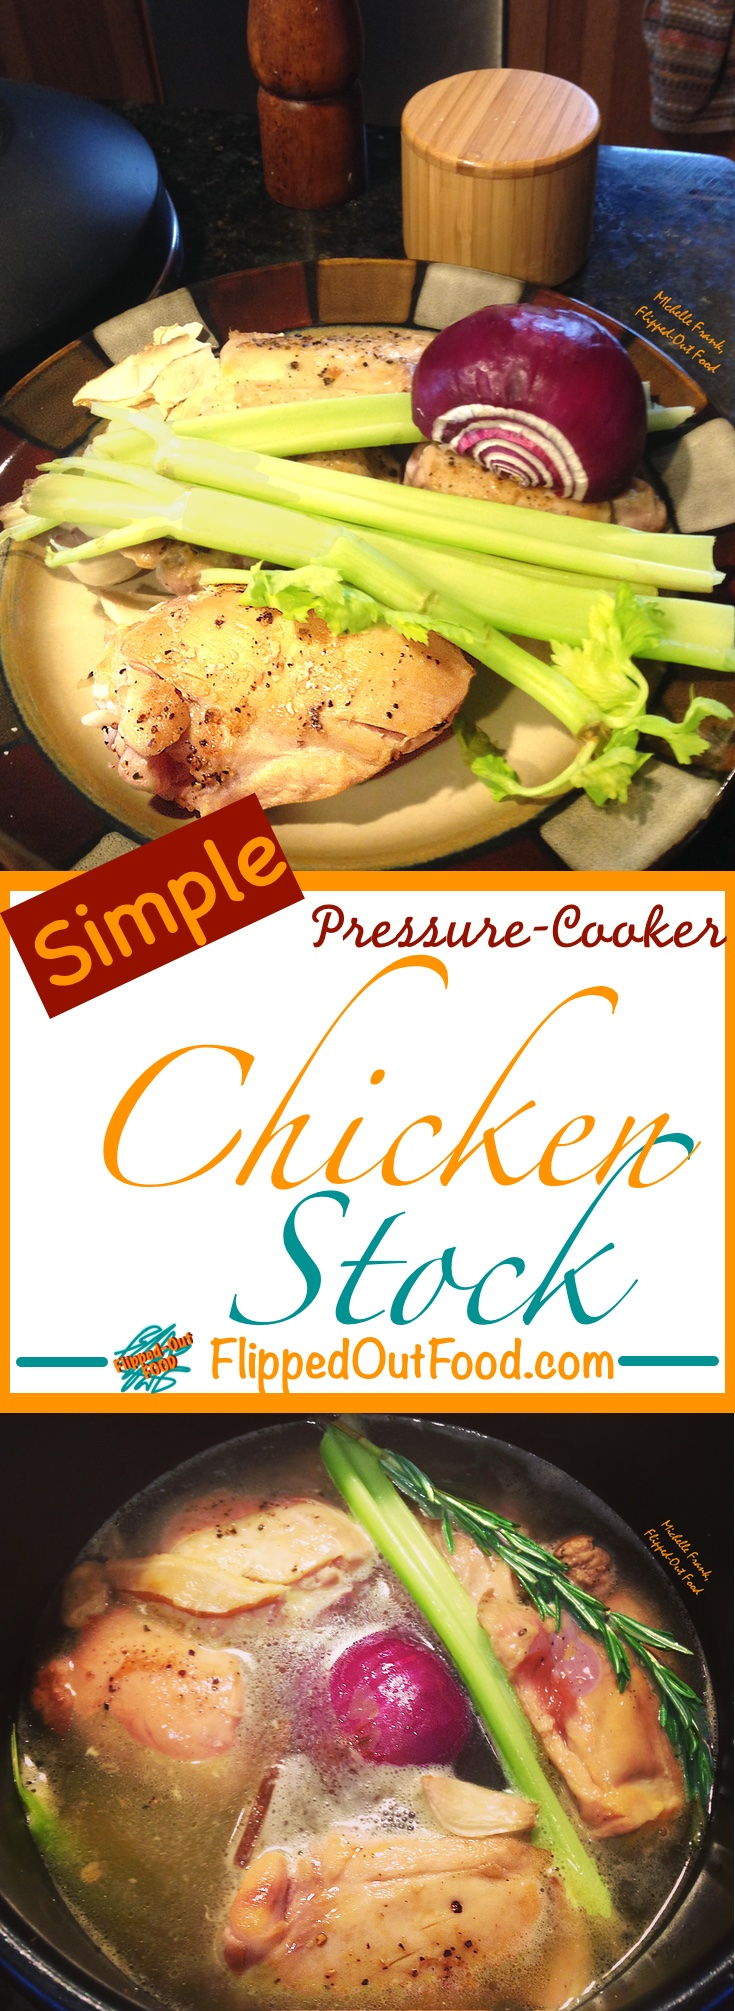 Rich, flavorful Pressure-Cooker Chicken Stock is perfect for soups, stews, and sauces—and it's done in a fraction of the time!